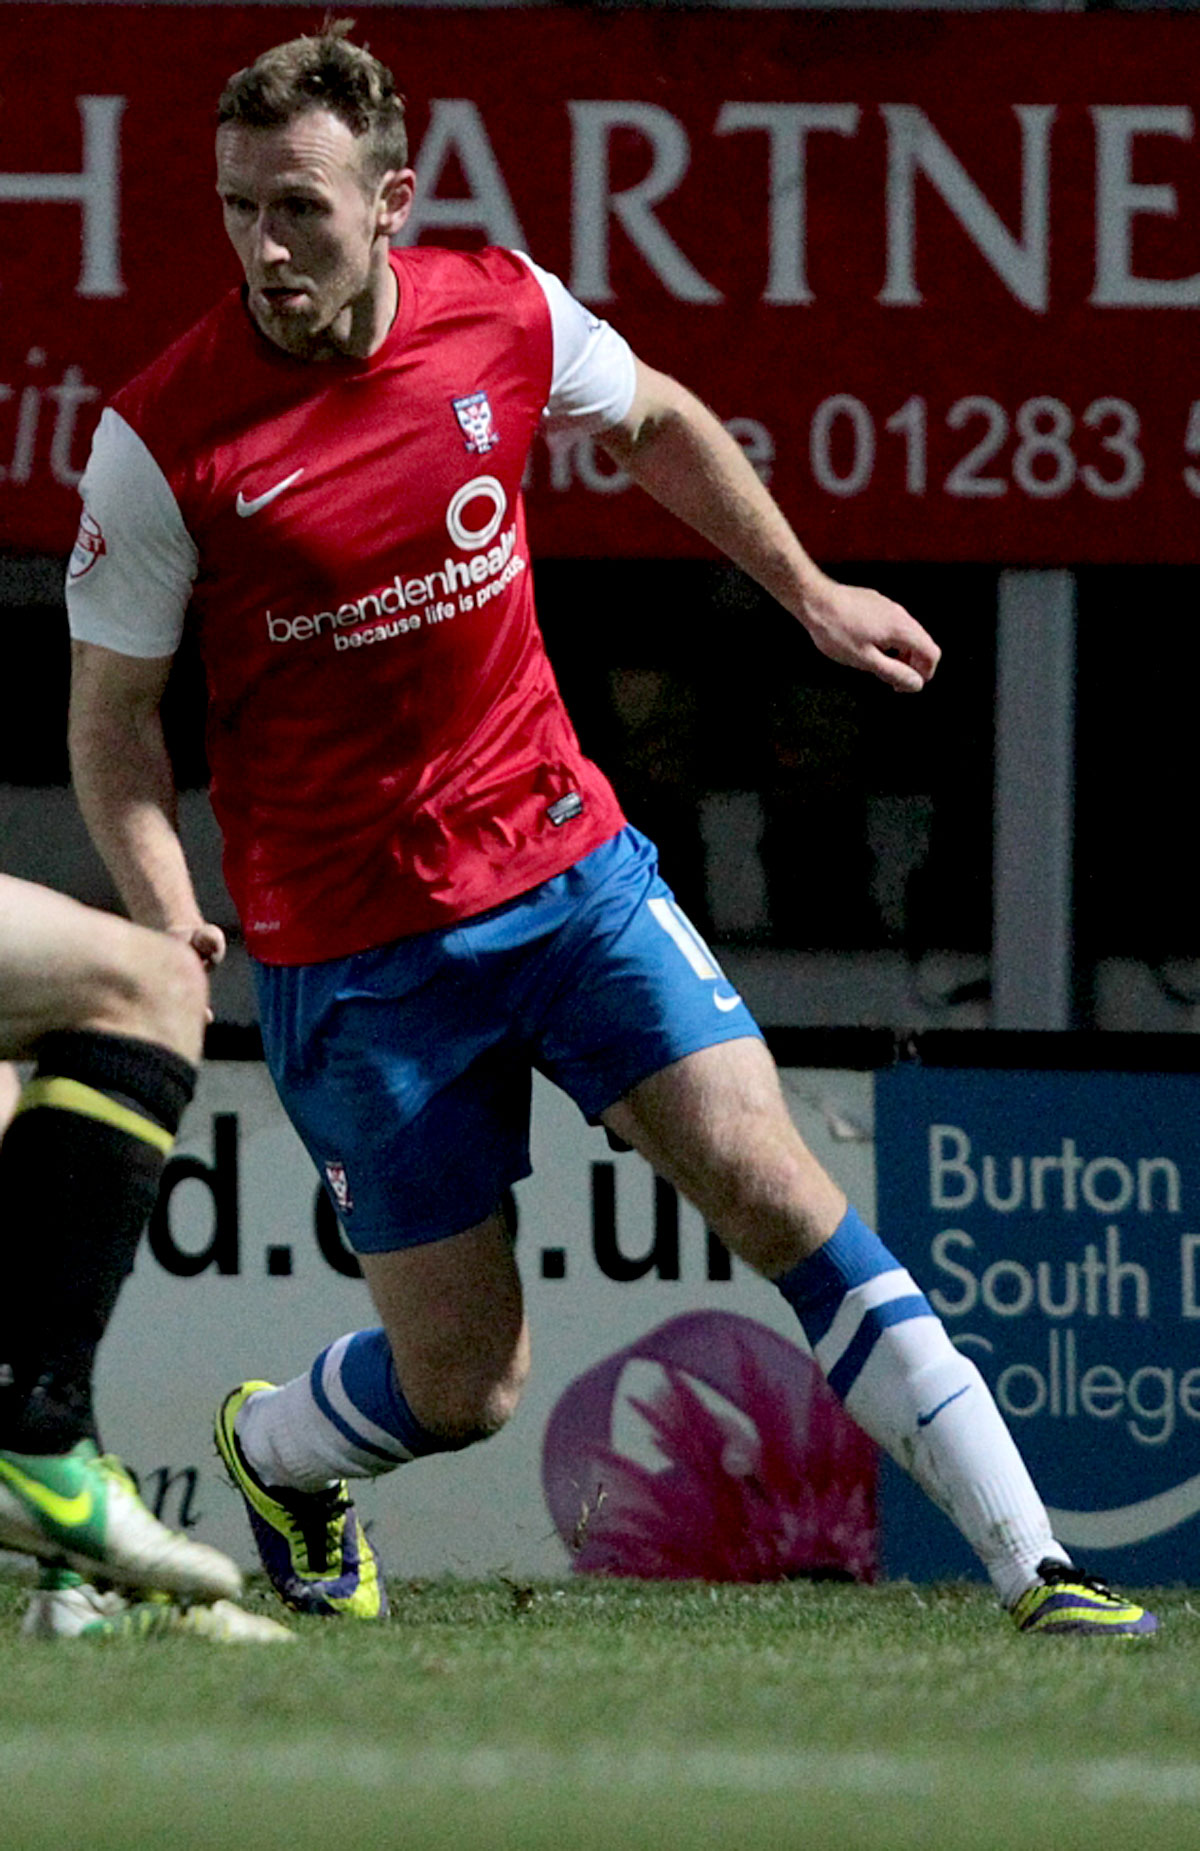 York City sign off pre-season with battling Blades win